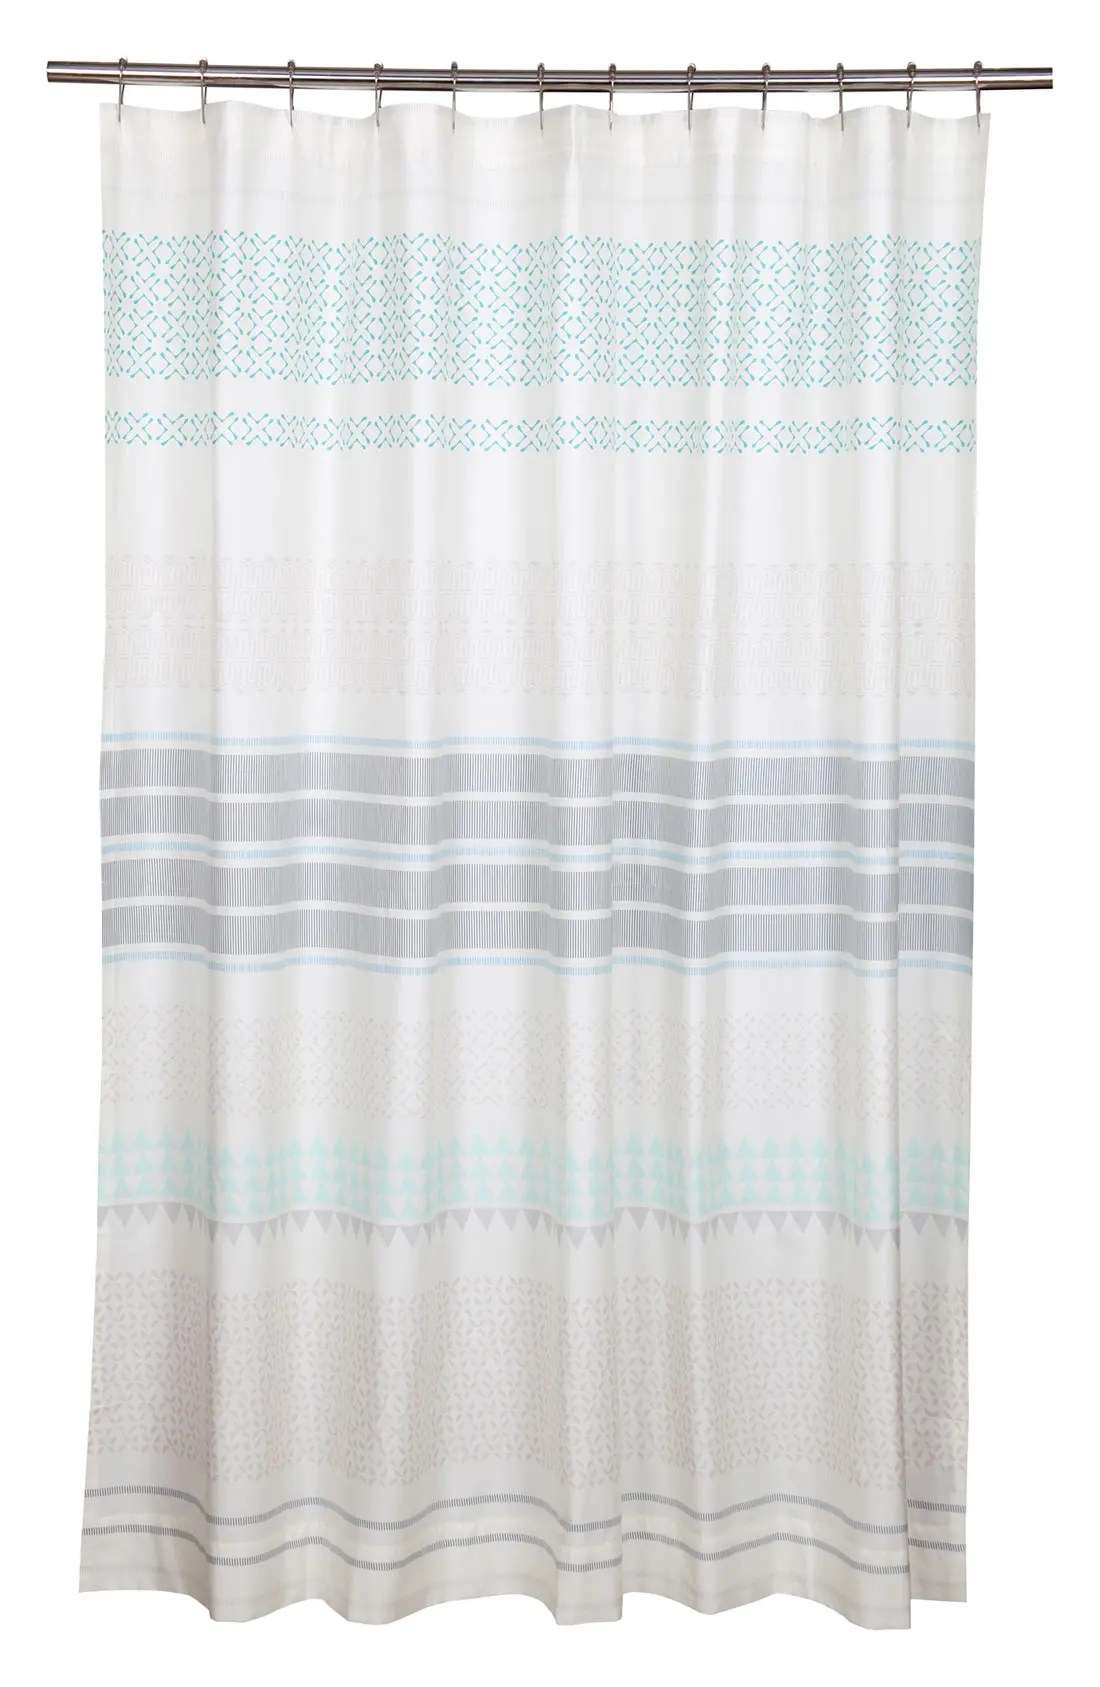 82 Shower Curtain Blissliving Home Mataveri Shower Curtain Online Only Nordstrom